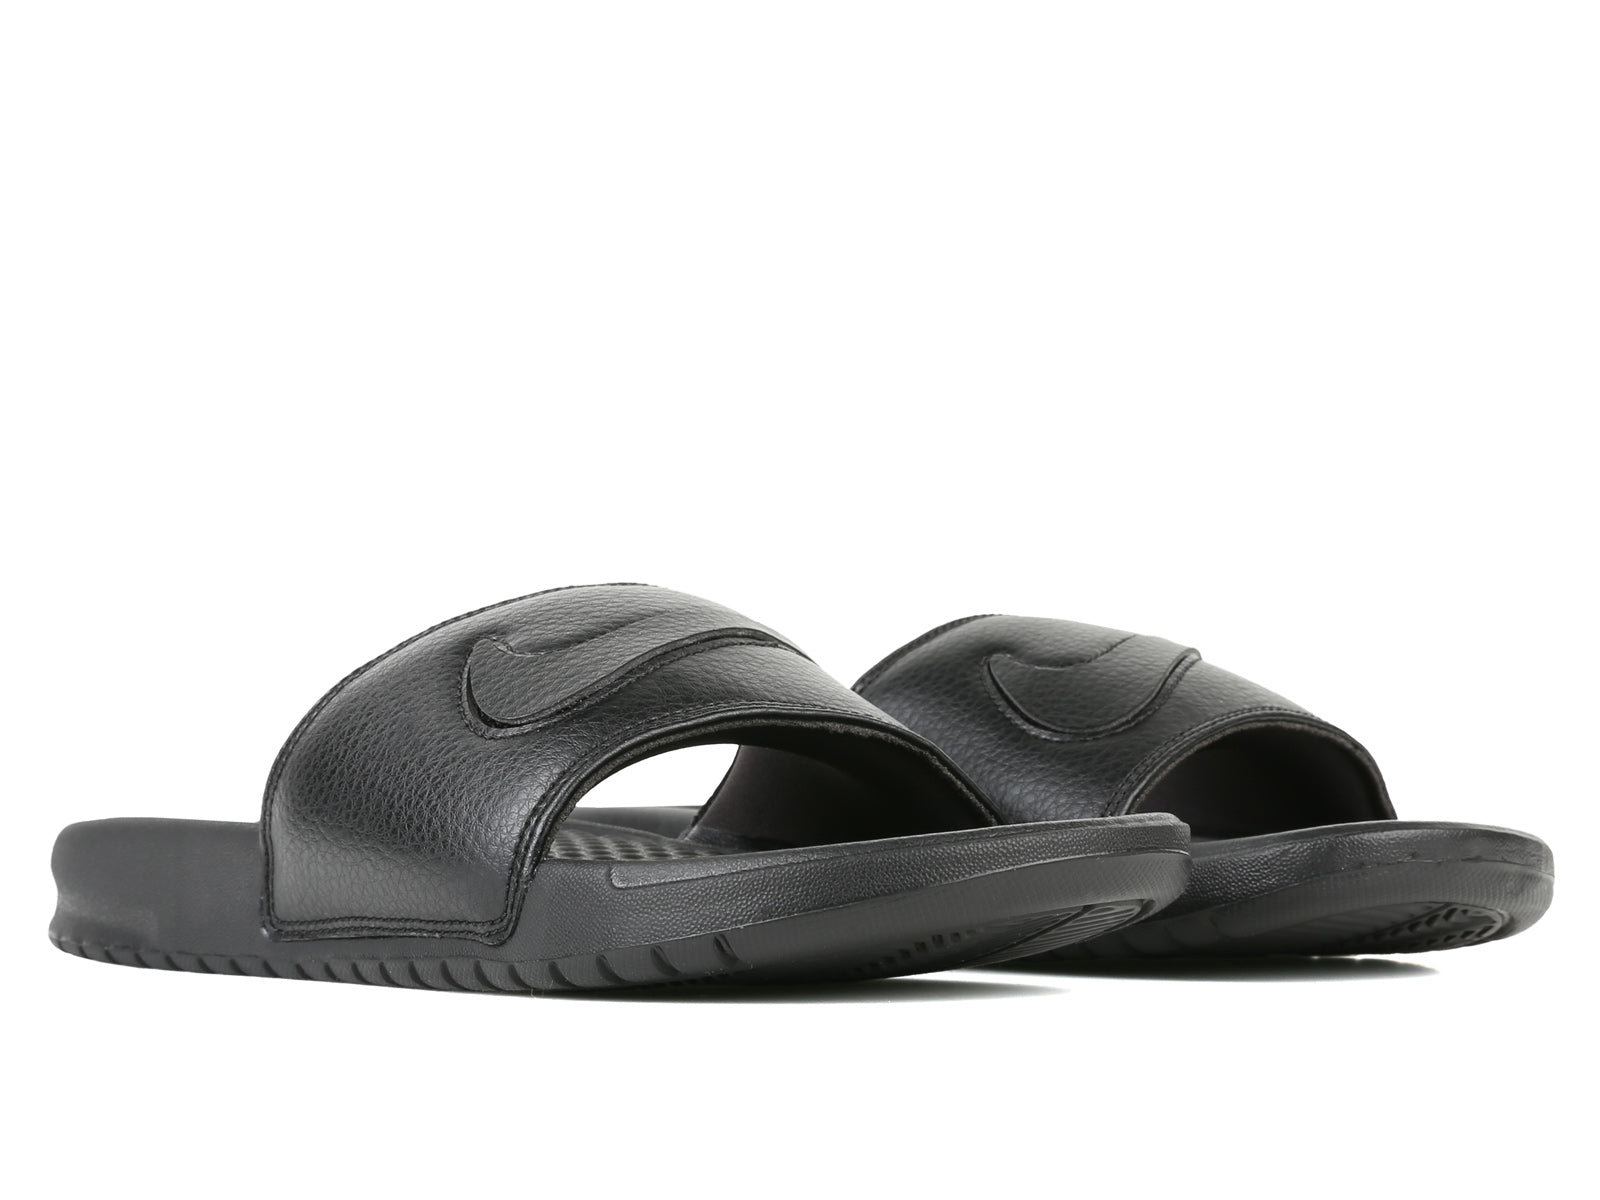 promo code 437a7 dad29 The Nike Benassi JDI LTD Men s Slide offers casual comfort with a padded  strap and textured footbed. Interchangeable Swoosh patches are included for  ...